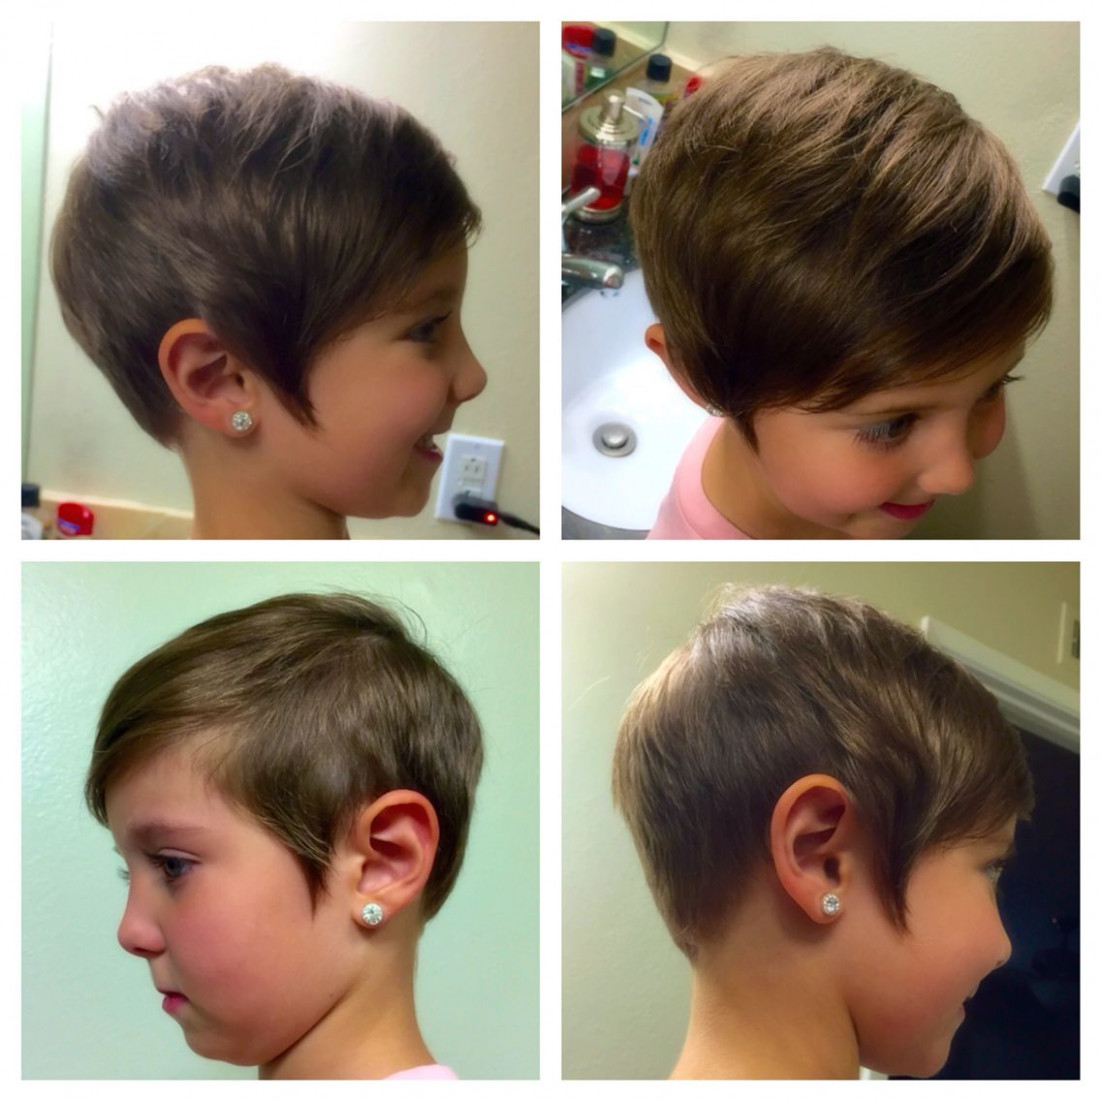 Pin on hairstyles pixie cut for girls